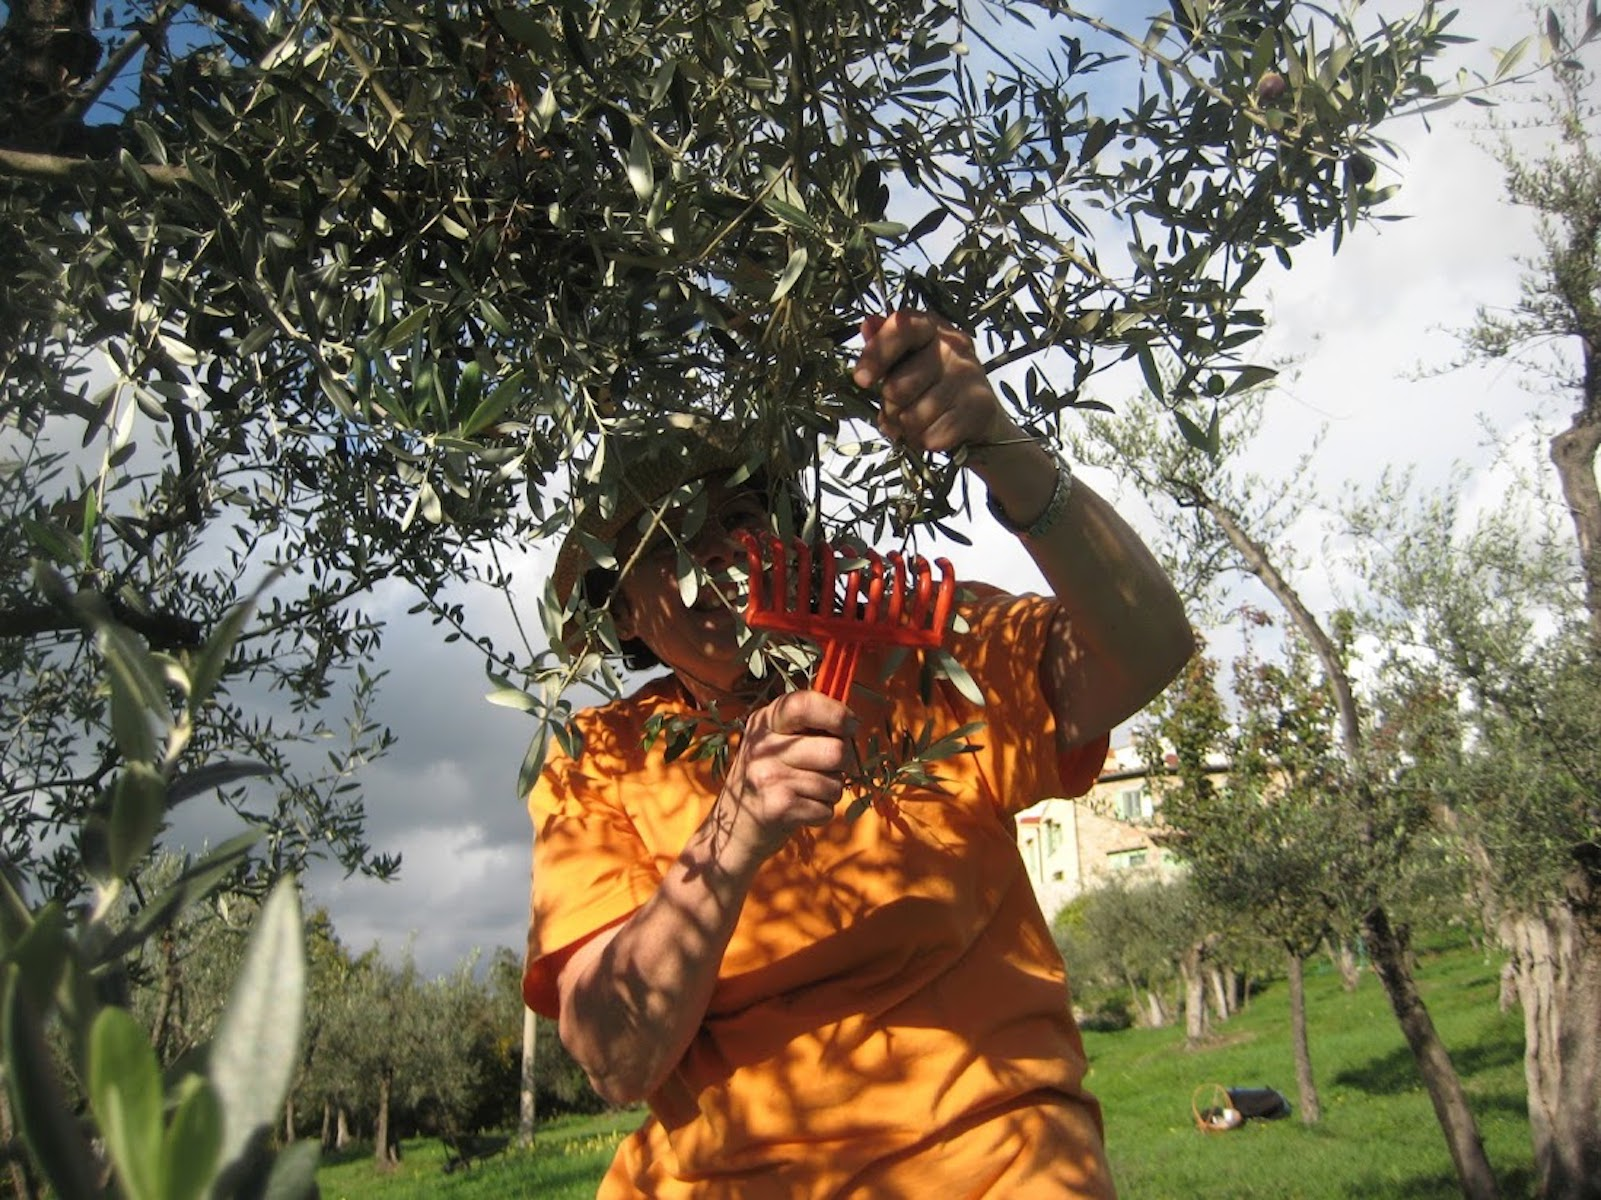 picking olives in Tuscany